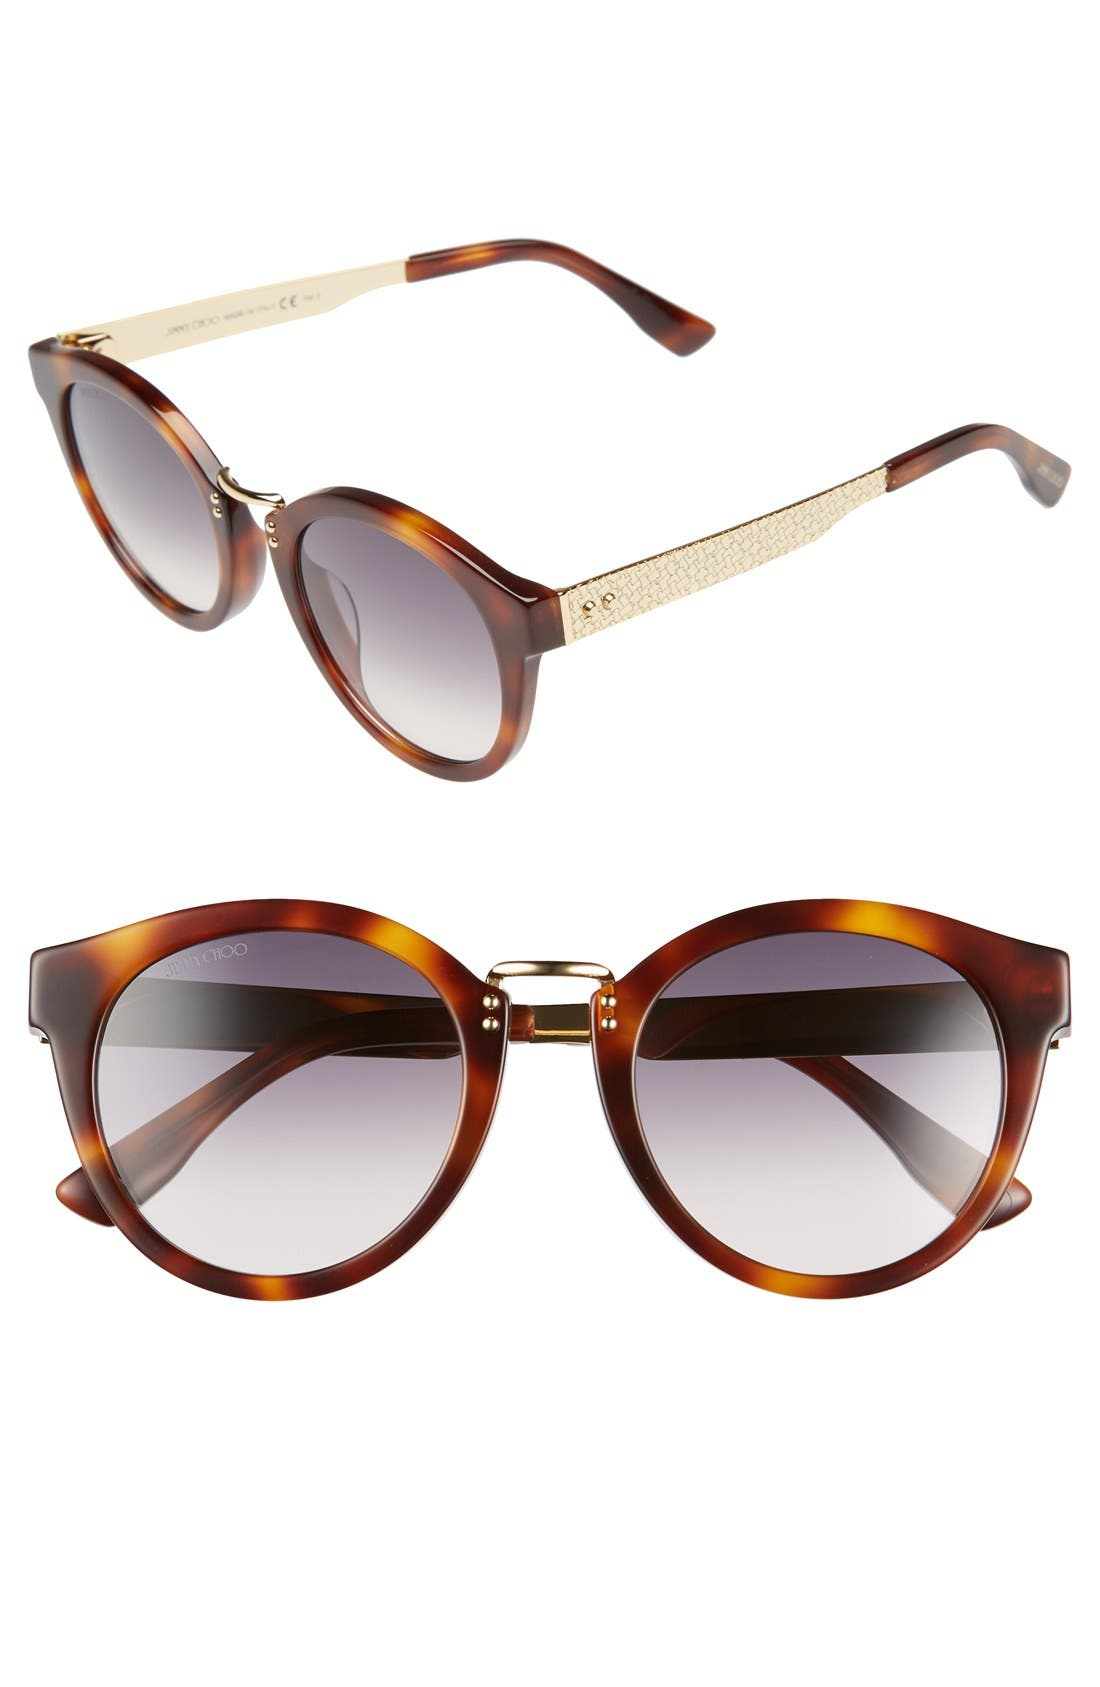 Jimmy Choo 'Pepys' 50mm Retro Sunglasses